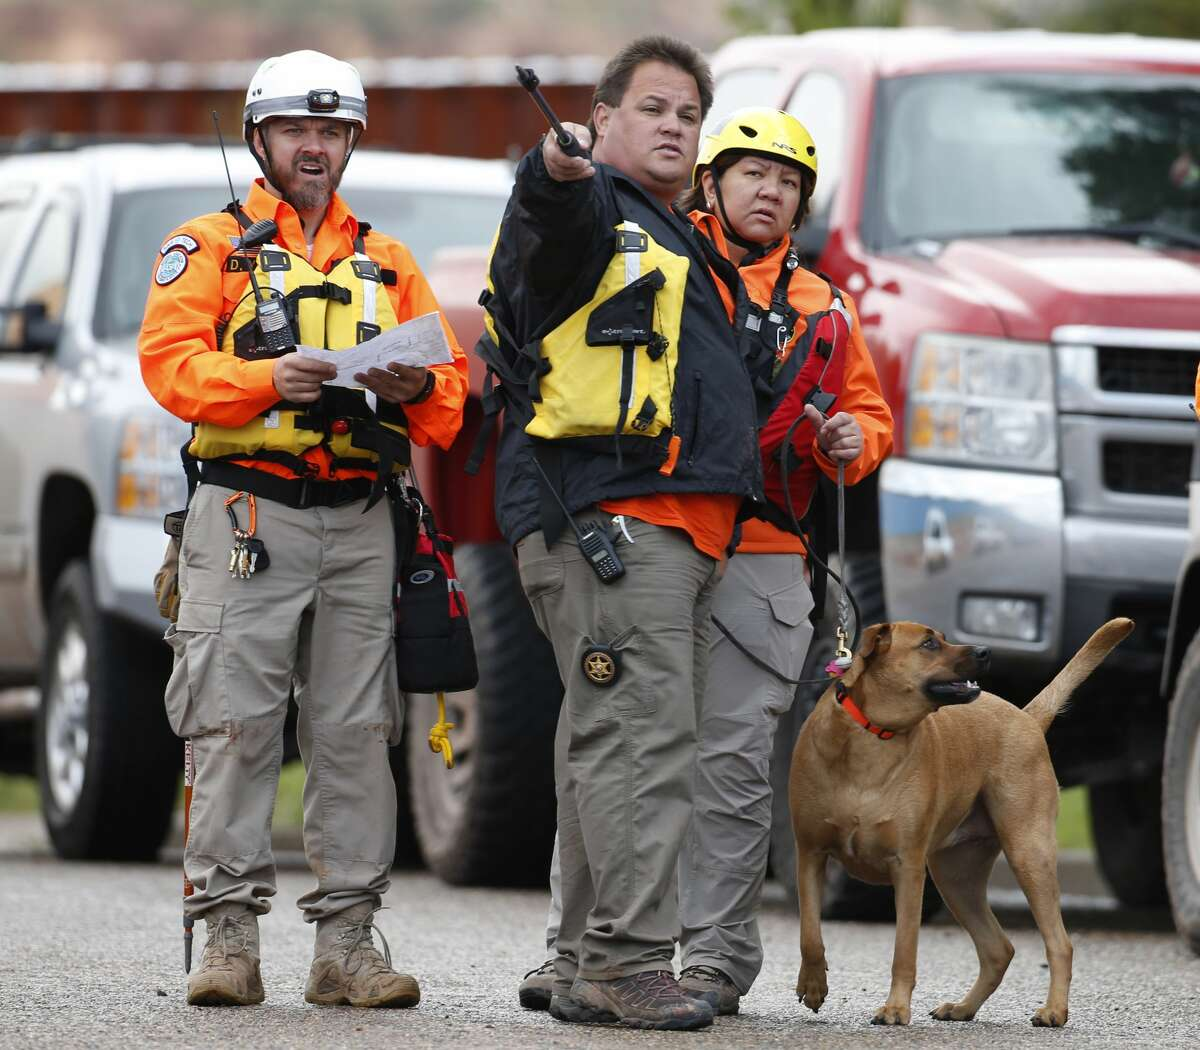 COLORADO CITY, AZ - SEPTEMBER 15: Personnel from the Mohave County Sheriffs Search and Rescue prepare to search Short Creek for missing bodies on September 15, 2015 in Colorado City, Arizona. Flash floods from heavy rains on the afternoon of September 14, 2015 washed away two cars in Hildale as they were crossing a flooded creek, killing 8 people with five still missing. (Photo by George Frey/Getty Images